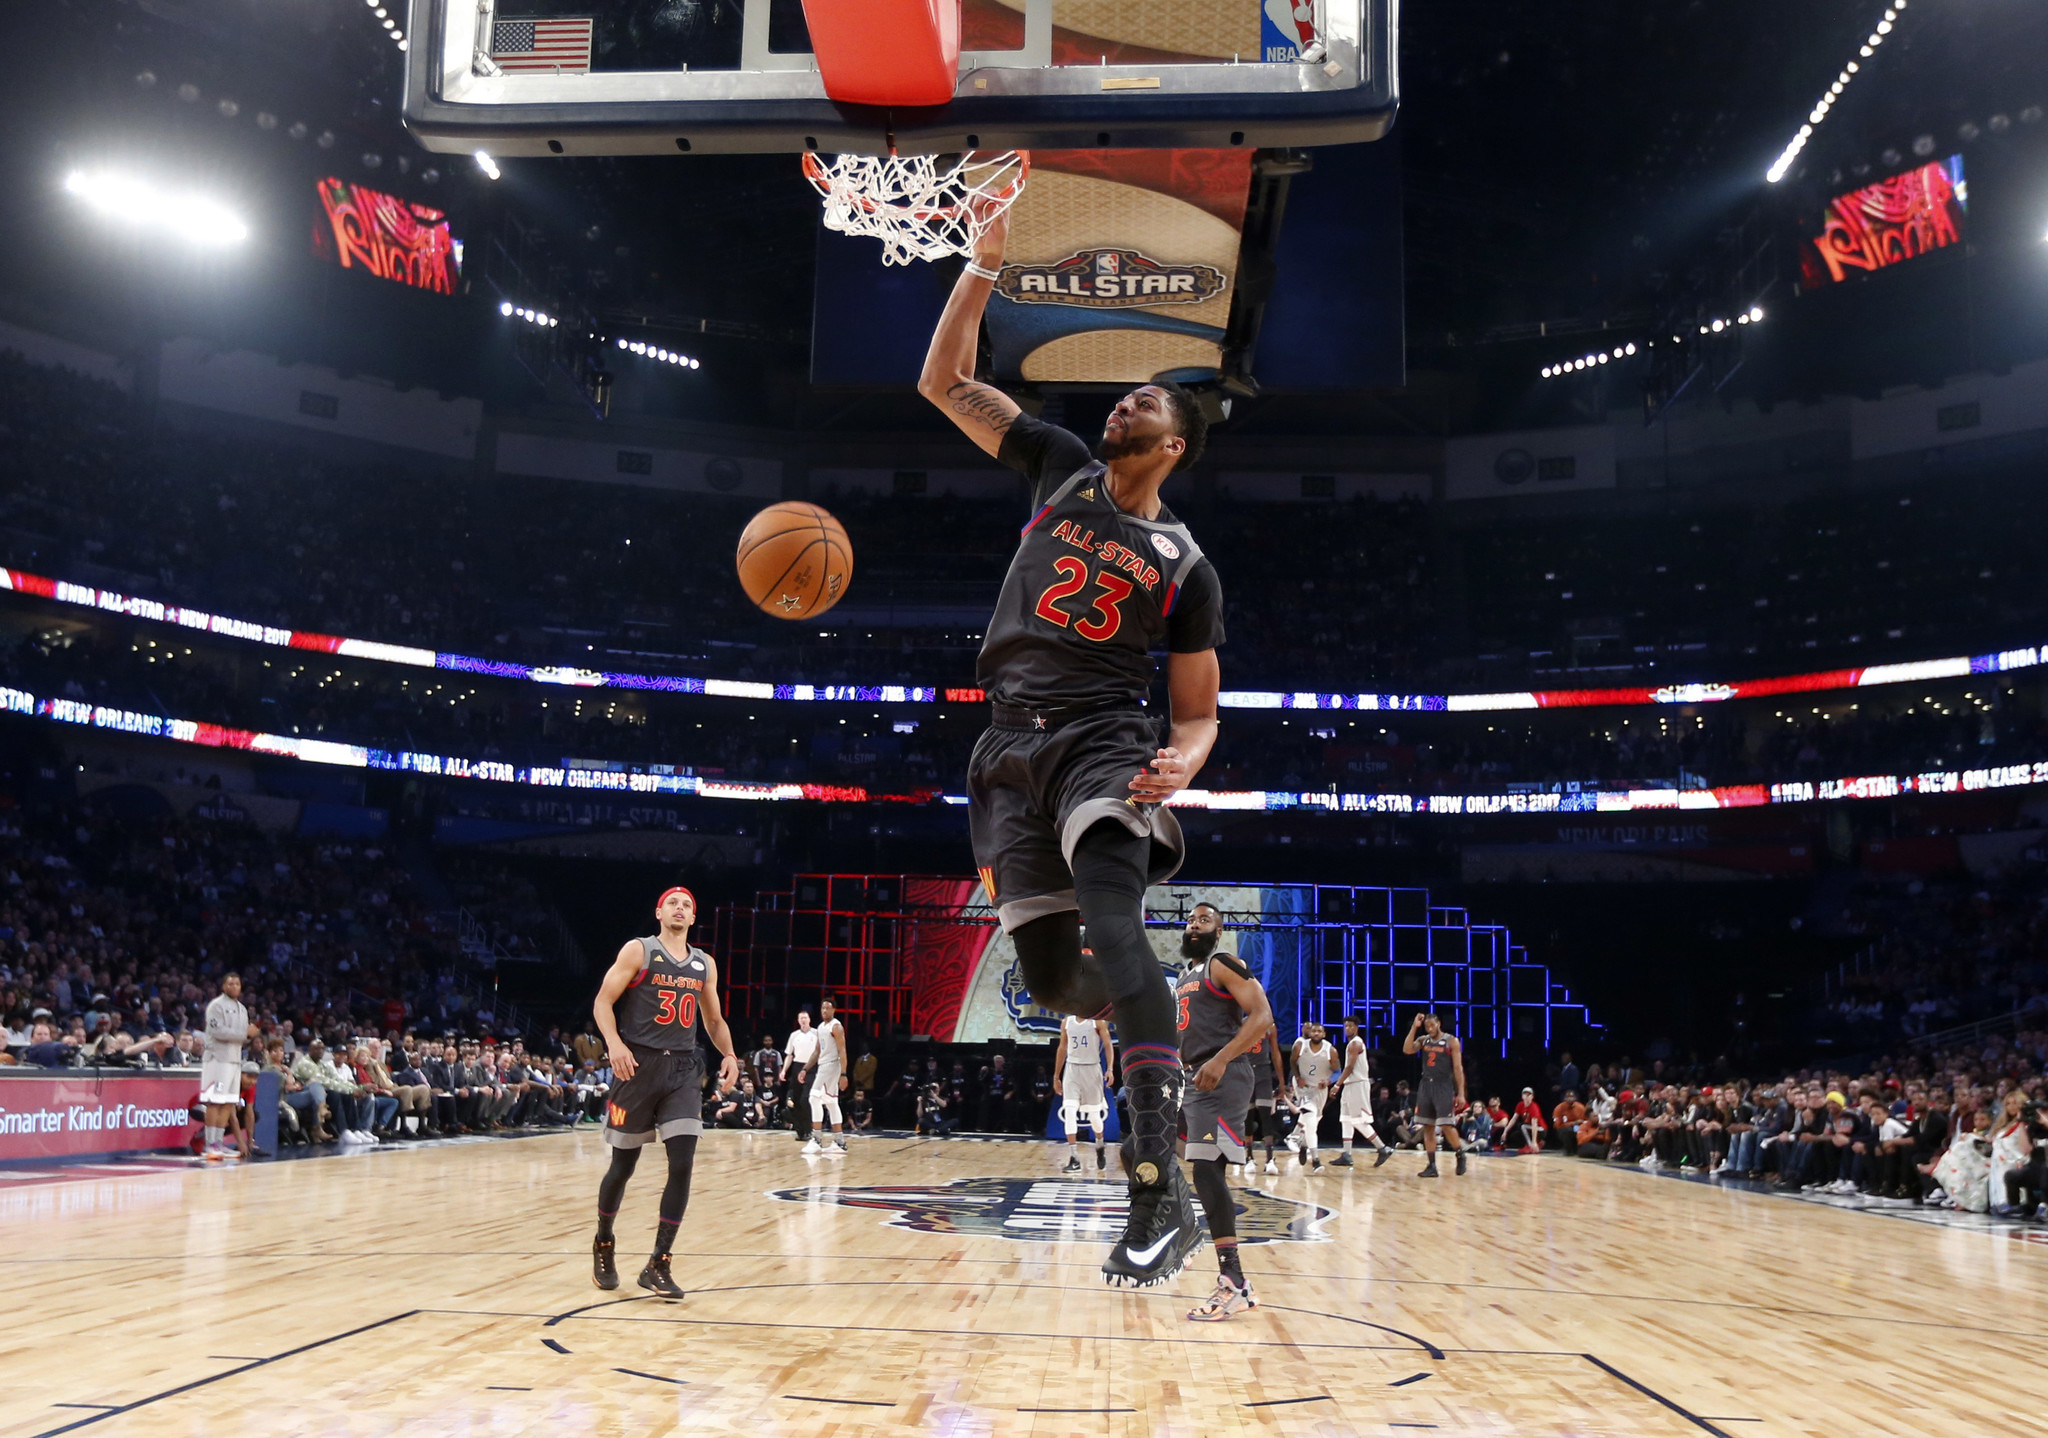 PHOTOS: NBA All-Star Game celebrities | wcnc.com